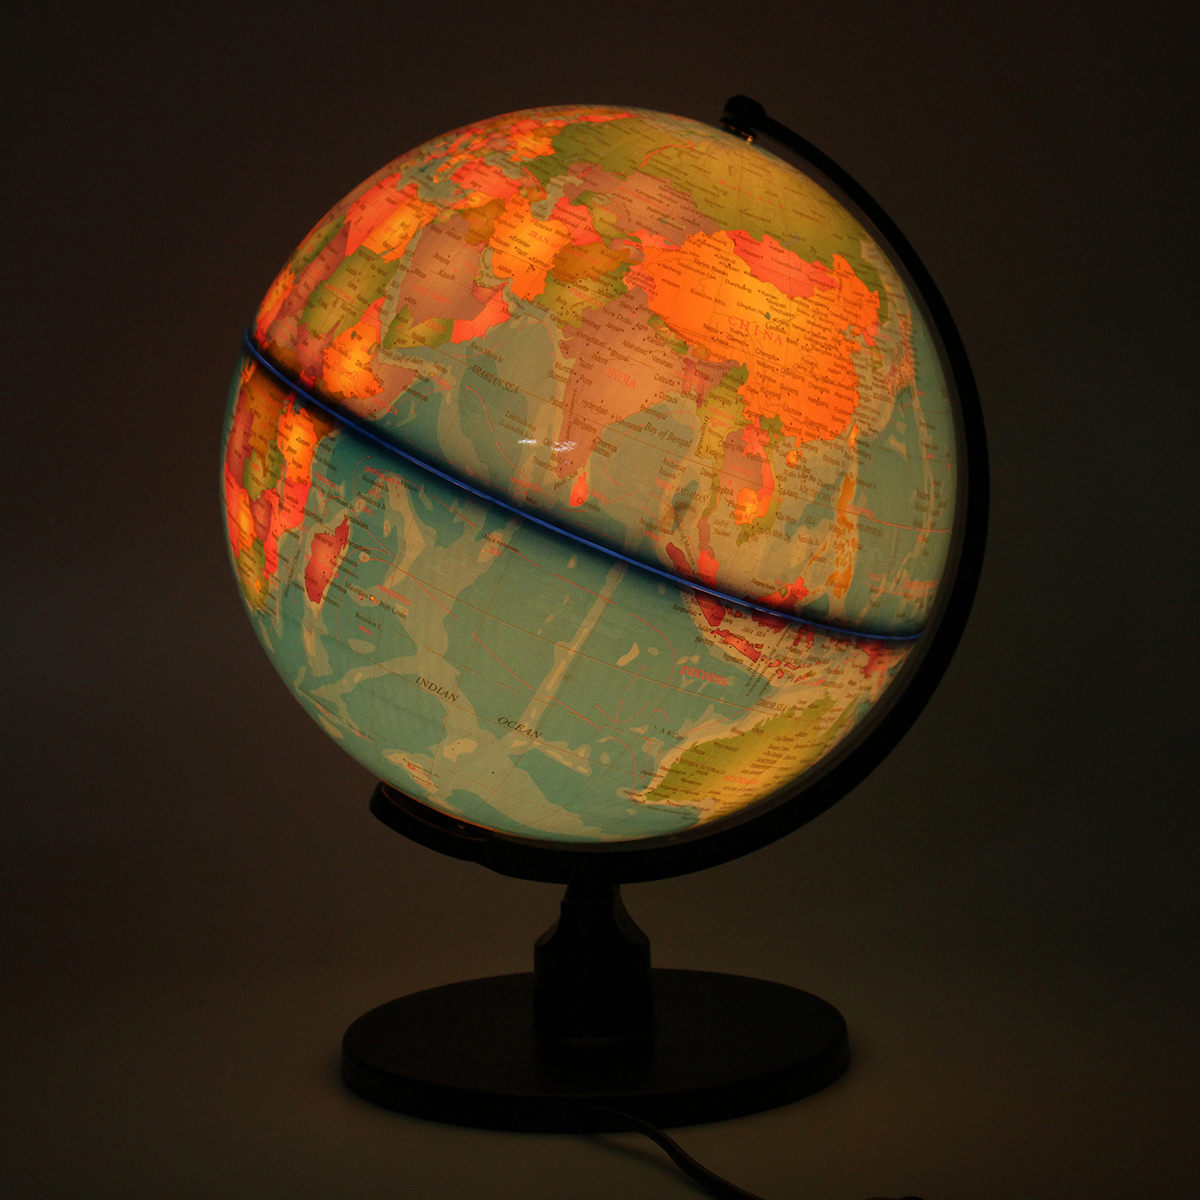 17CM Terrestrial Earth Globe World Map LED Light Geography Education Toy With Stand Home Decoration Office Ornament Kids Gift 12 5 world earth globe map geography led illuminated for home office desktop decoration education toy kids gift